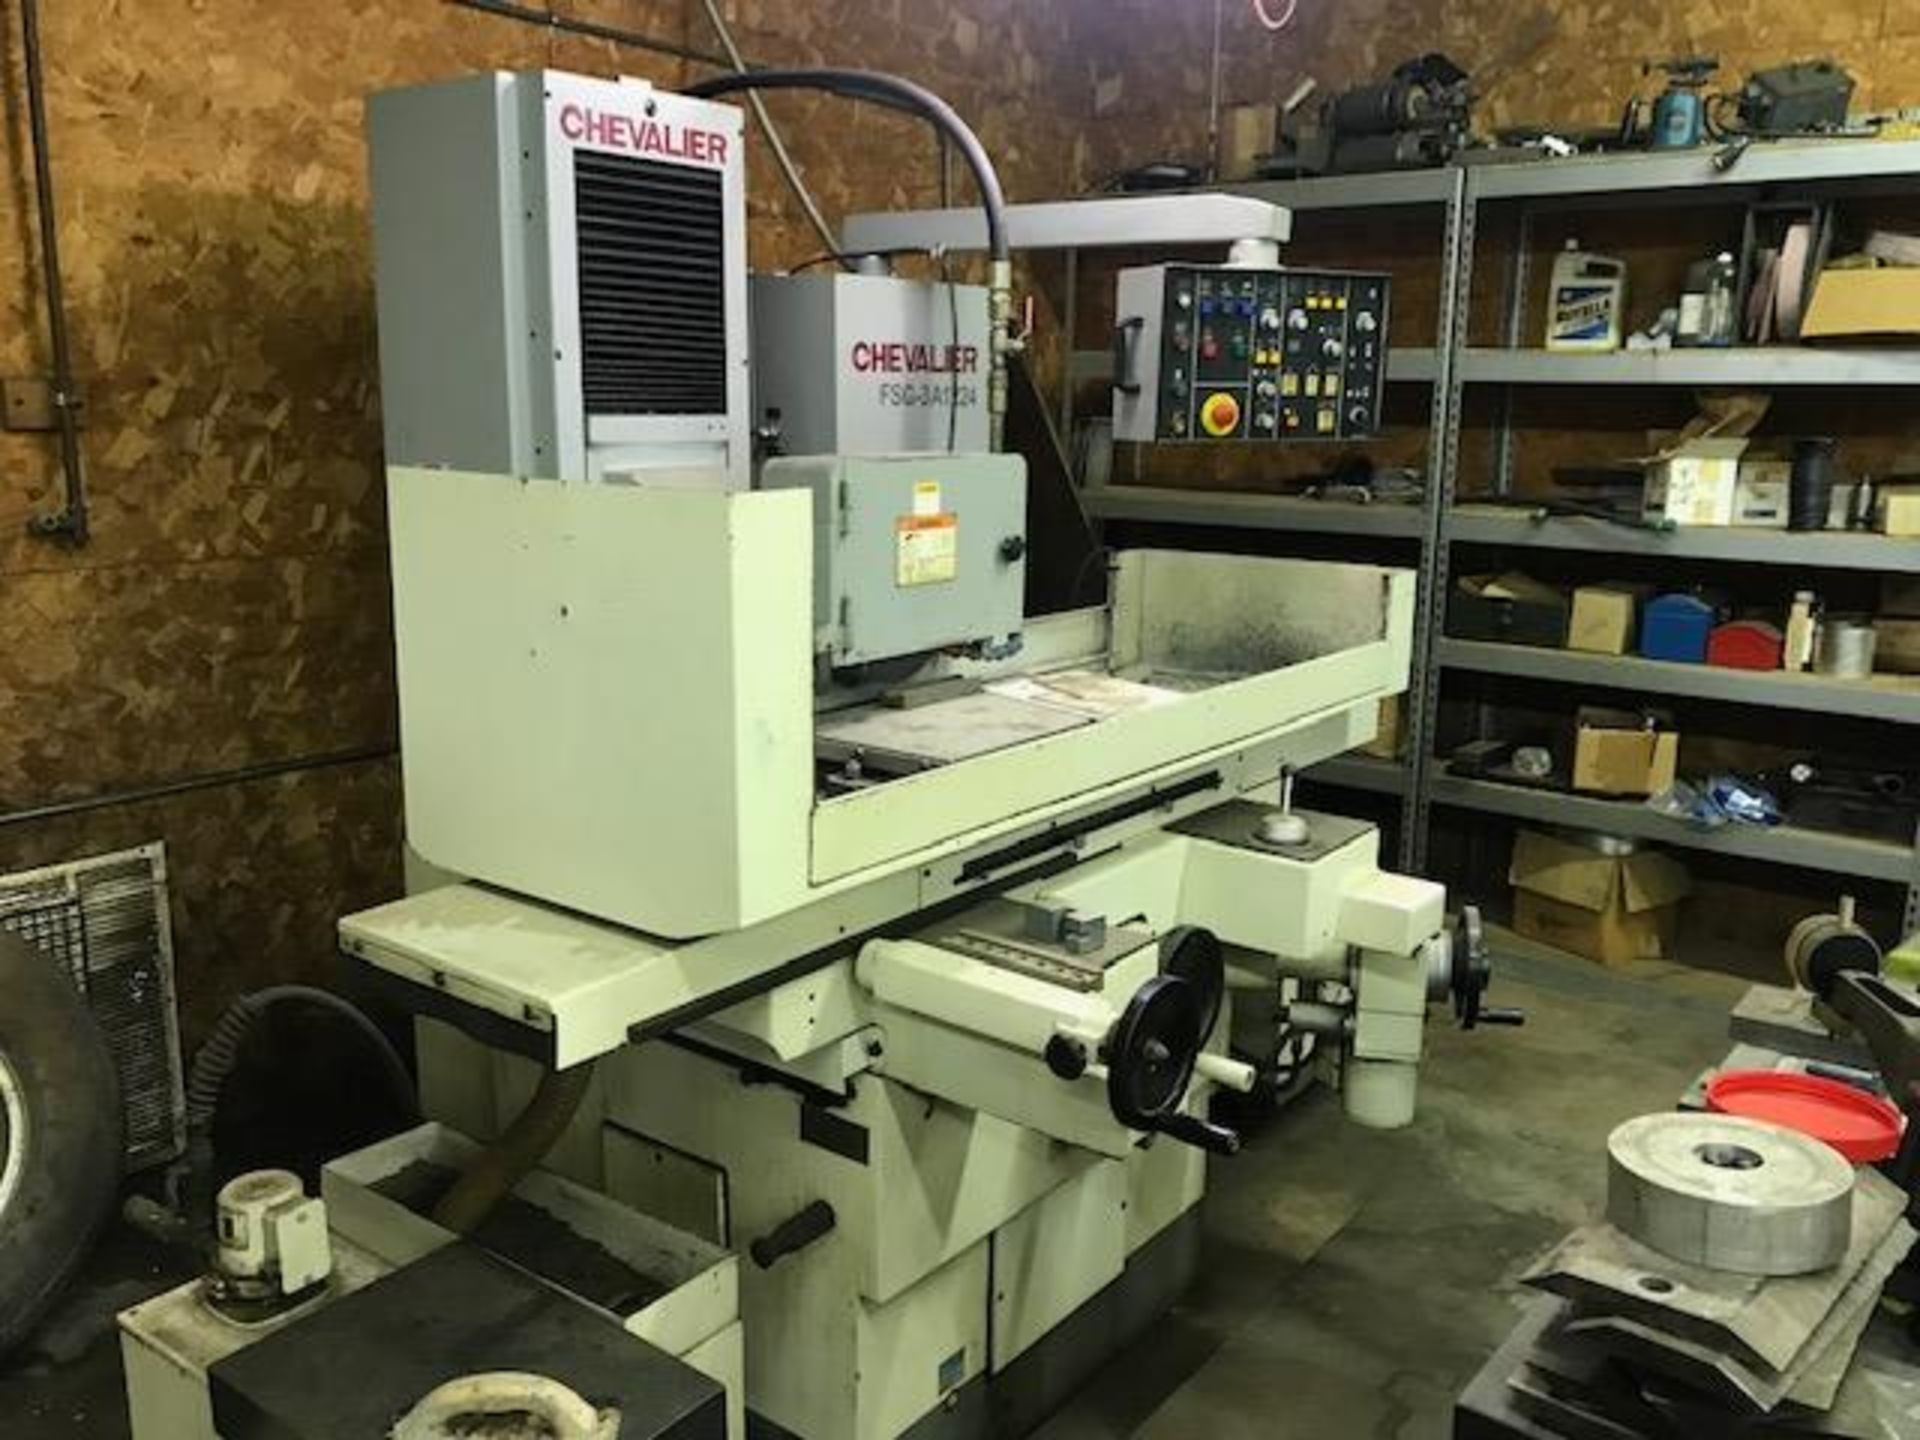 Lot 2C - CHEVALIER SURFACE GRINDER, MODEL FSG-3A1224, S/N P3951006, (LOCATION: SOUTH BEND, IN) ***RIGGING